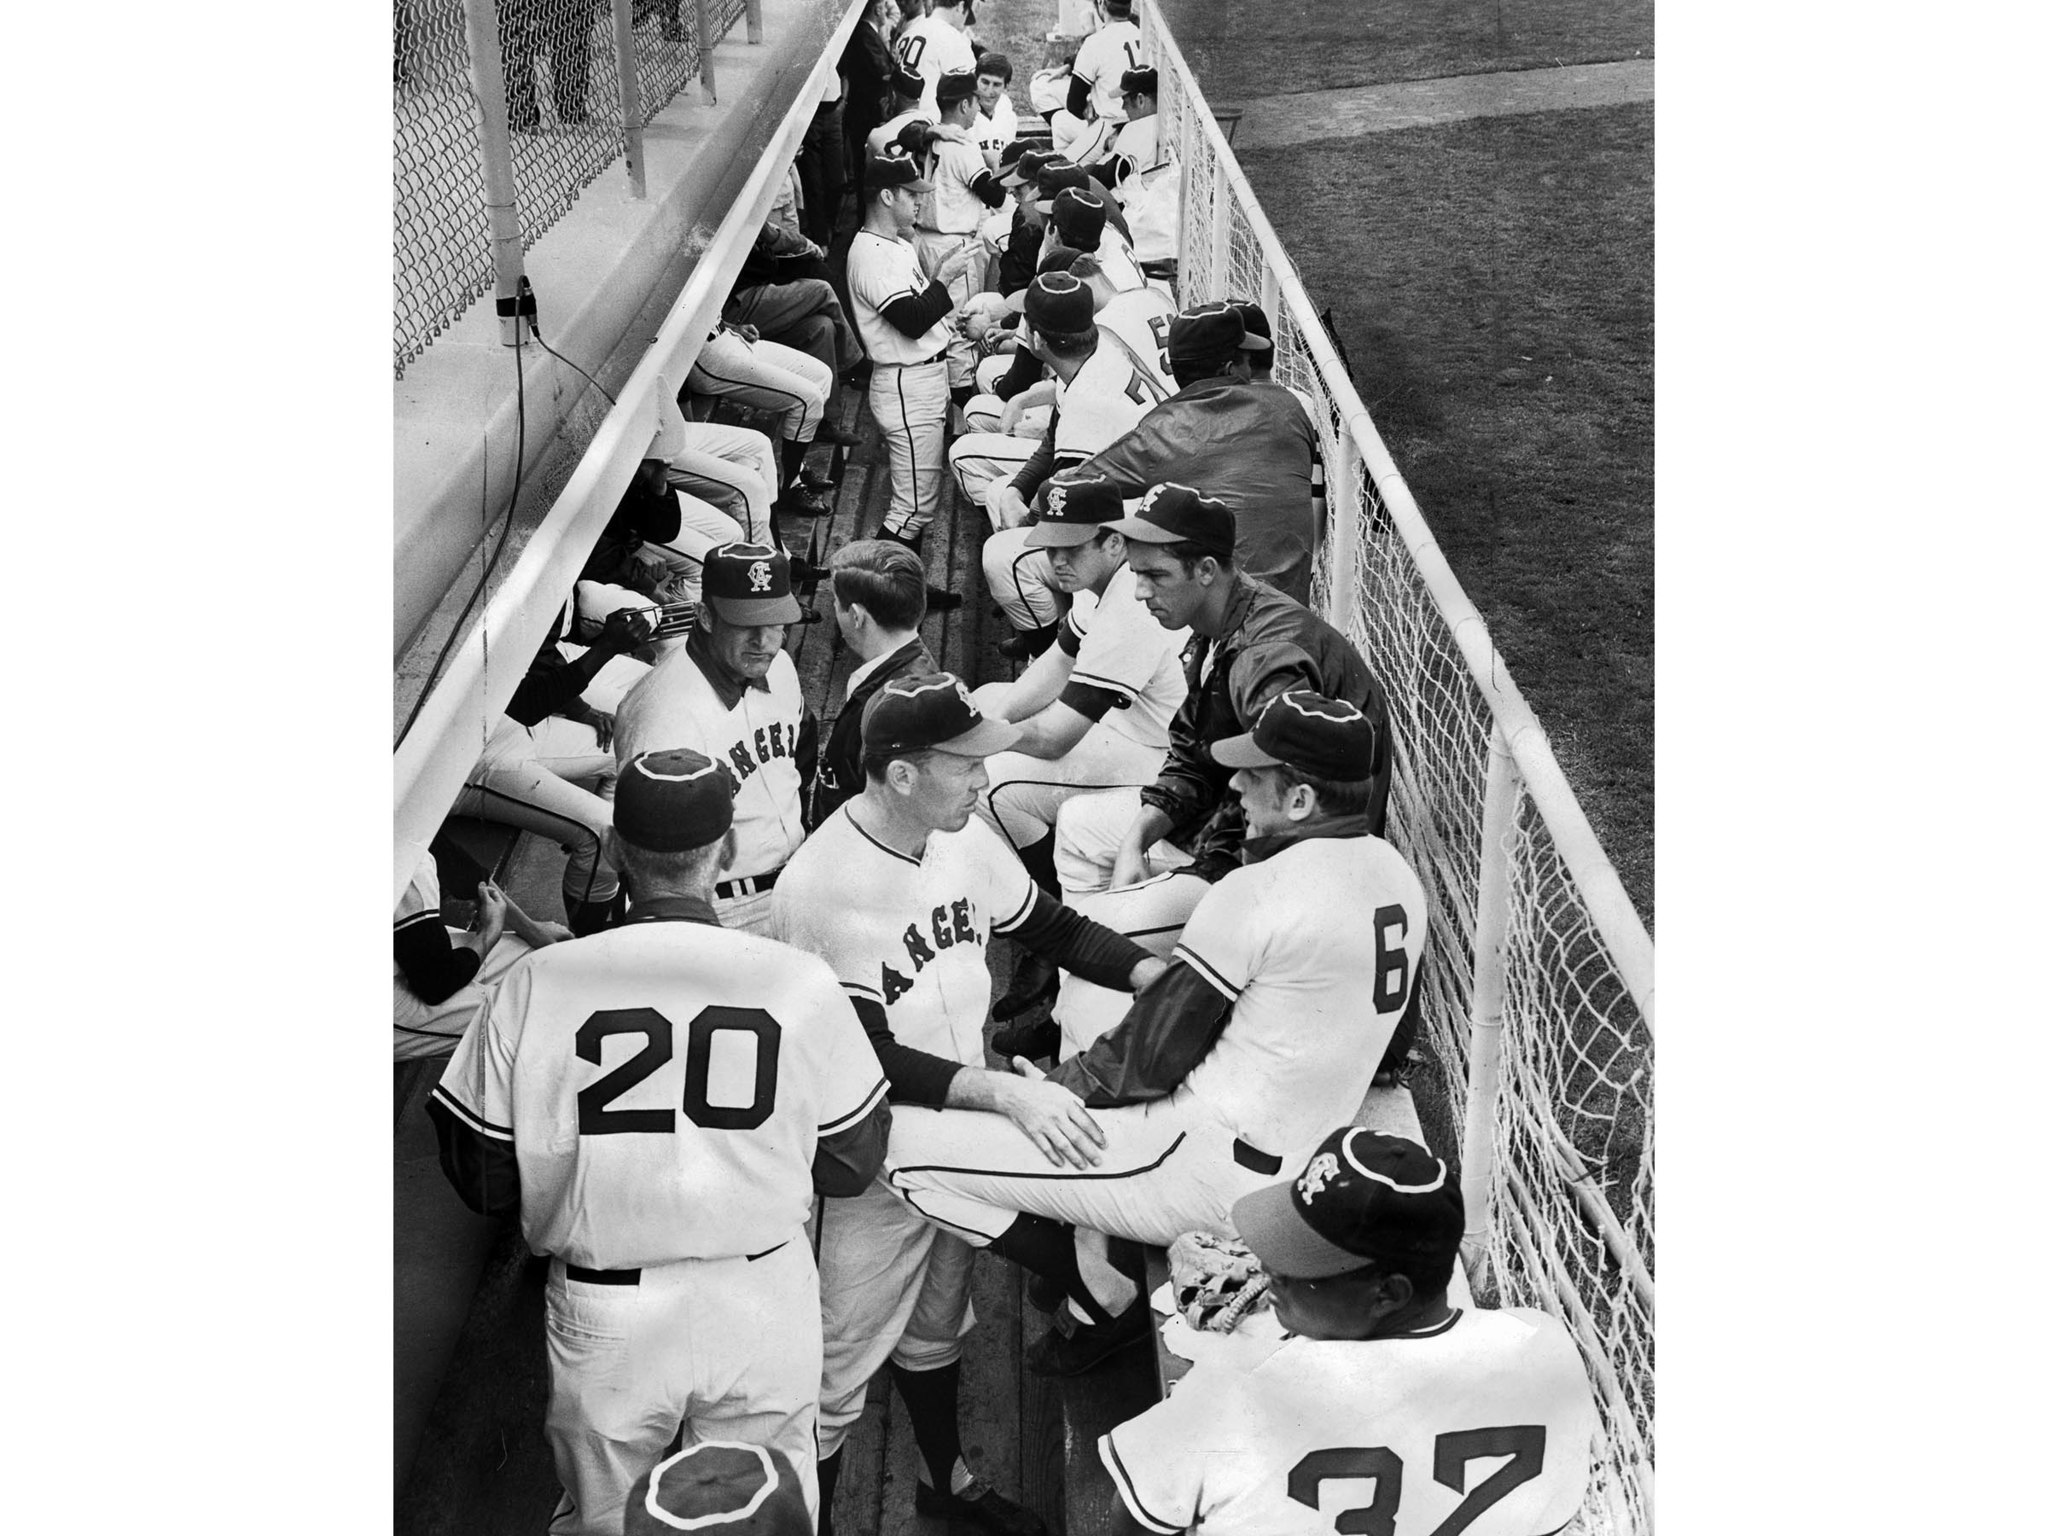 March 10, 1969: With 56 players in camp, the Angels dugout at Palm Springs gets jammed. This photo w